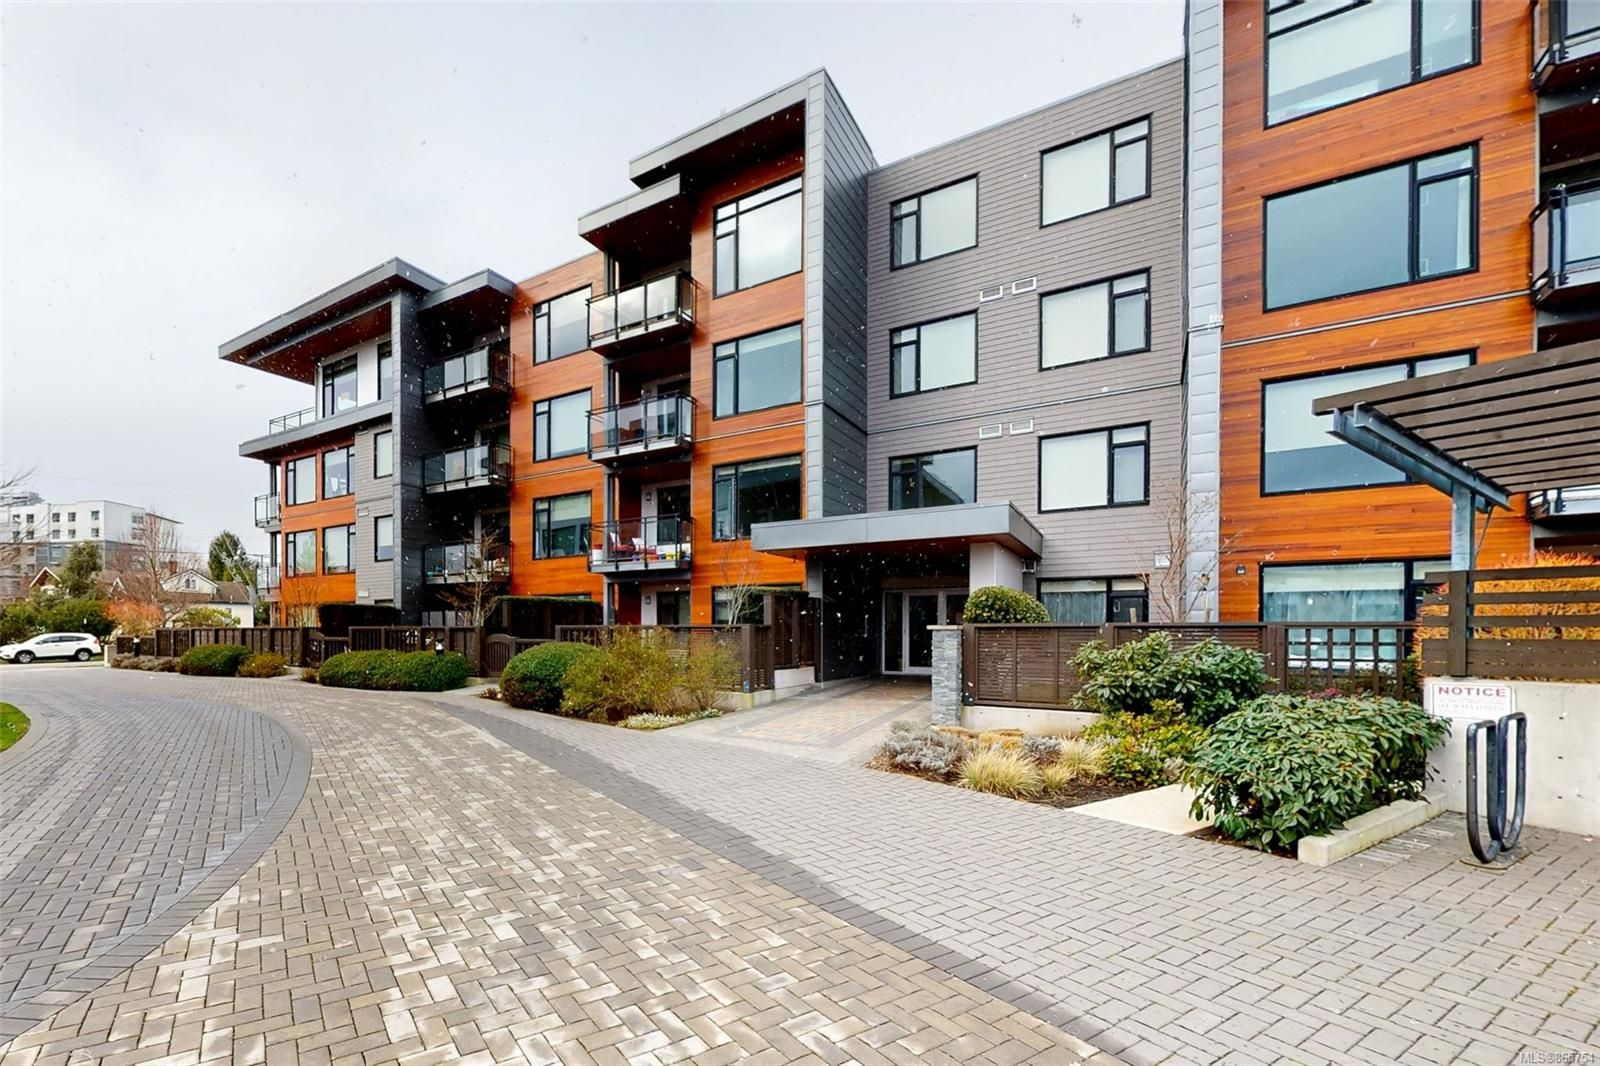 Main Photo: 201 3815 Rowland Ave in : SW Glanford Condo for sale (Saanich West)  : MLS®# 865754